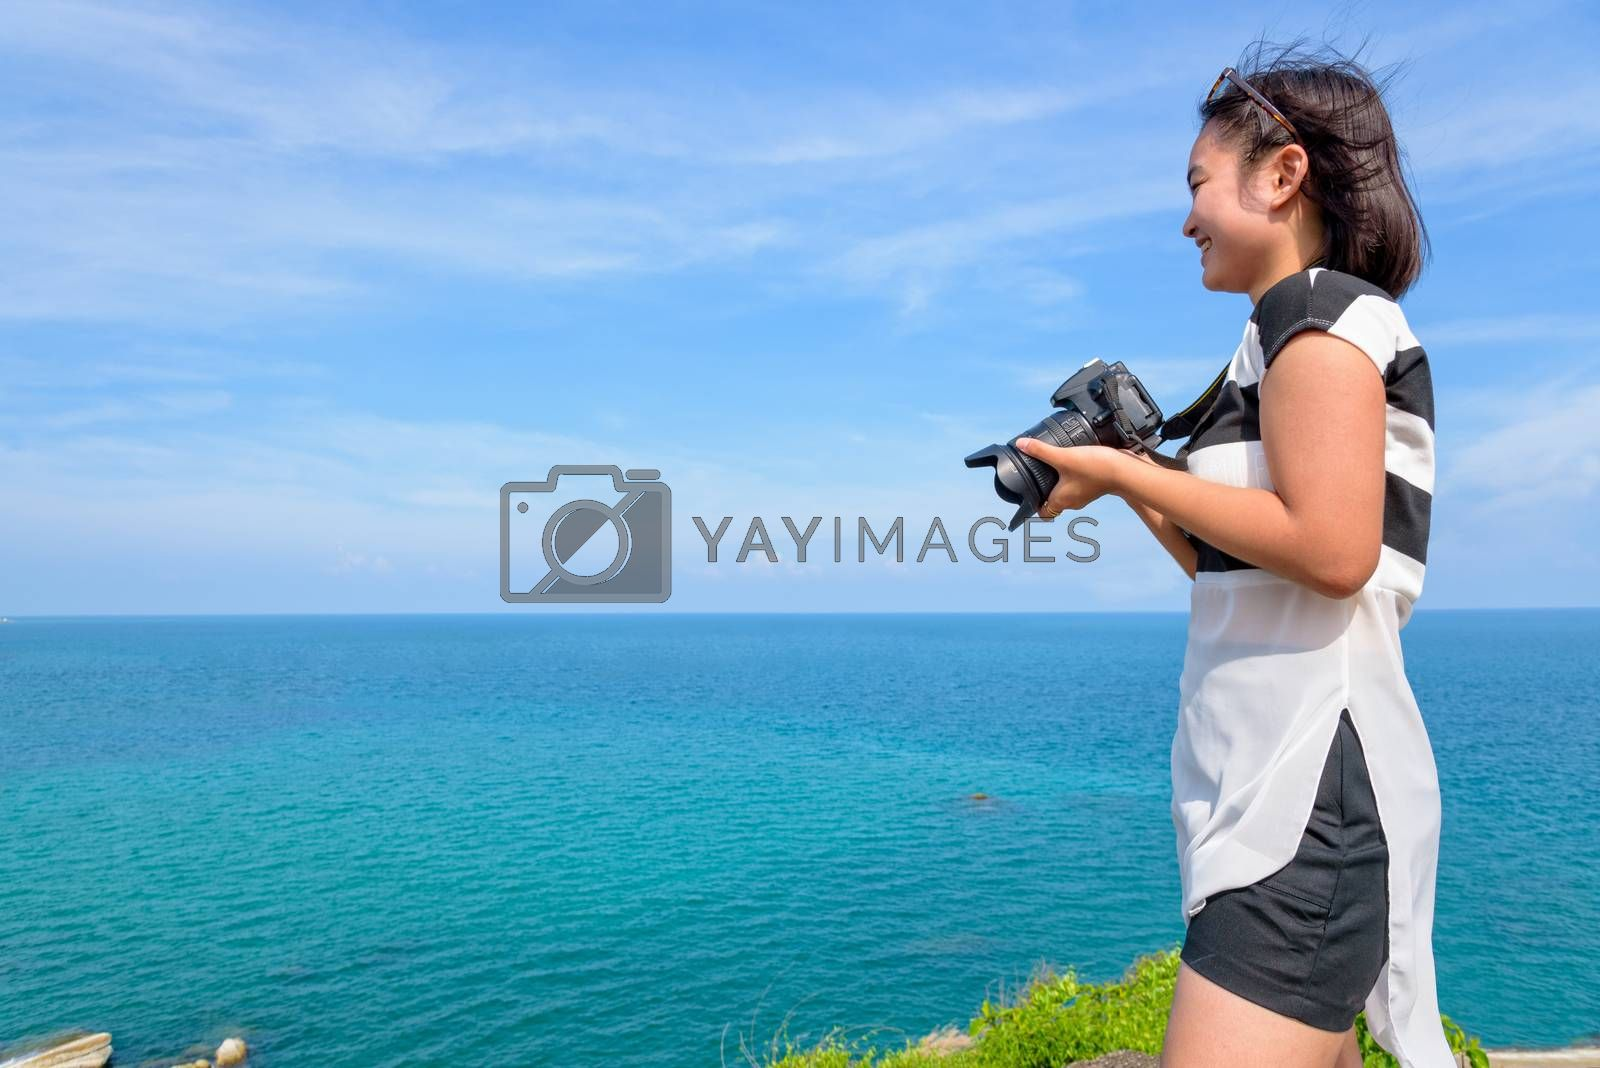 Teenage girl is holding a dslr camera smiling happily on the top of the island with the beautiful natural landscape of the blue sea and the summer sky as the background.